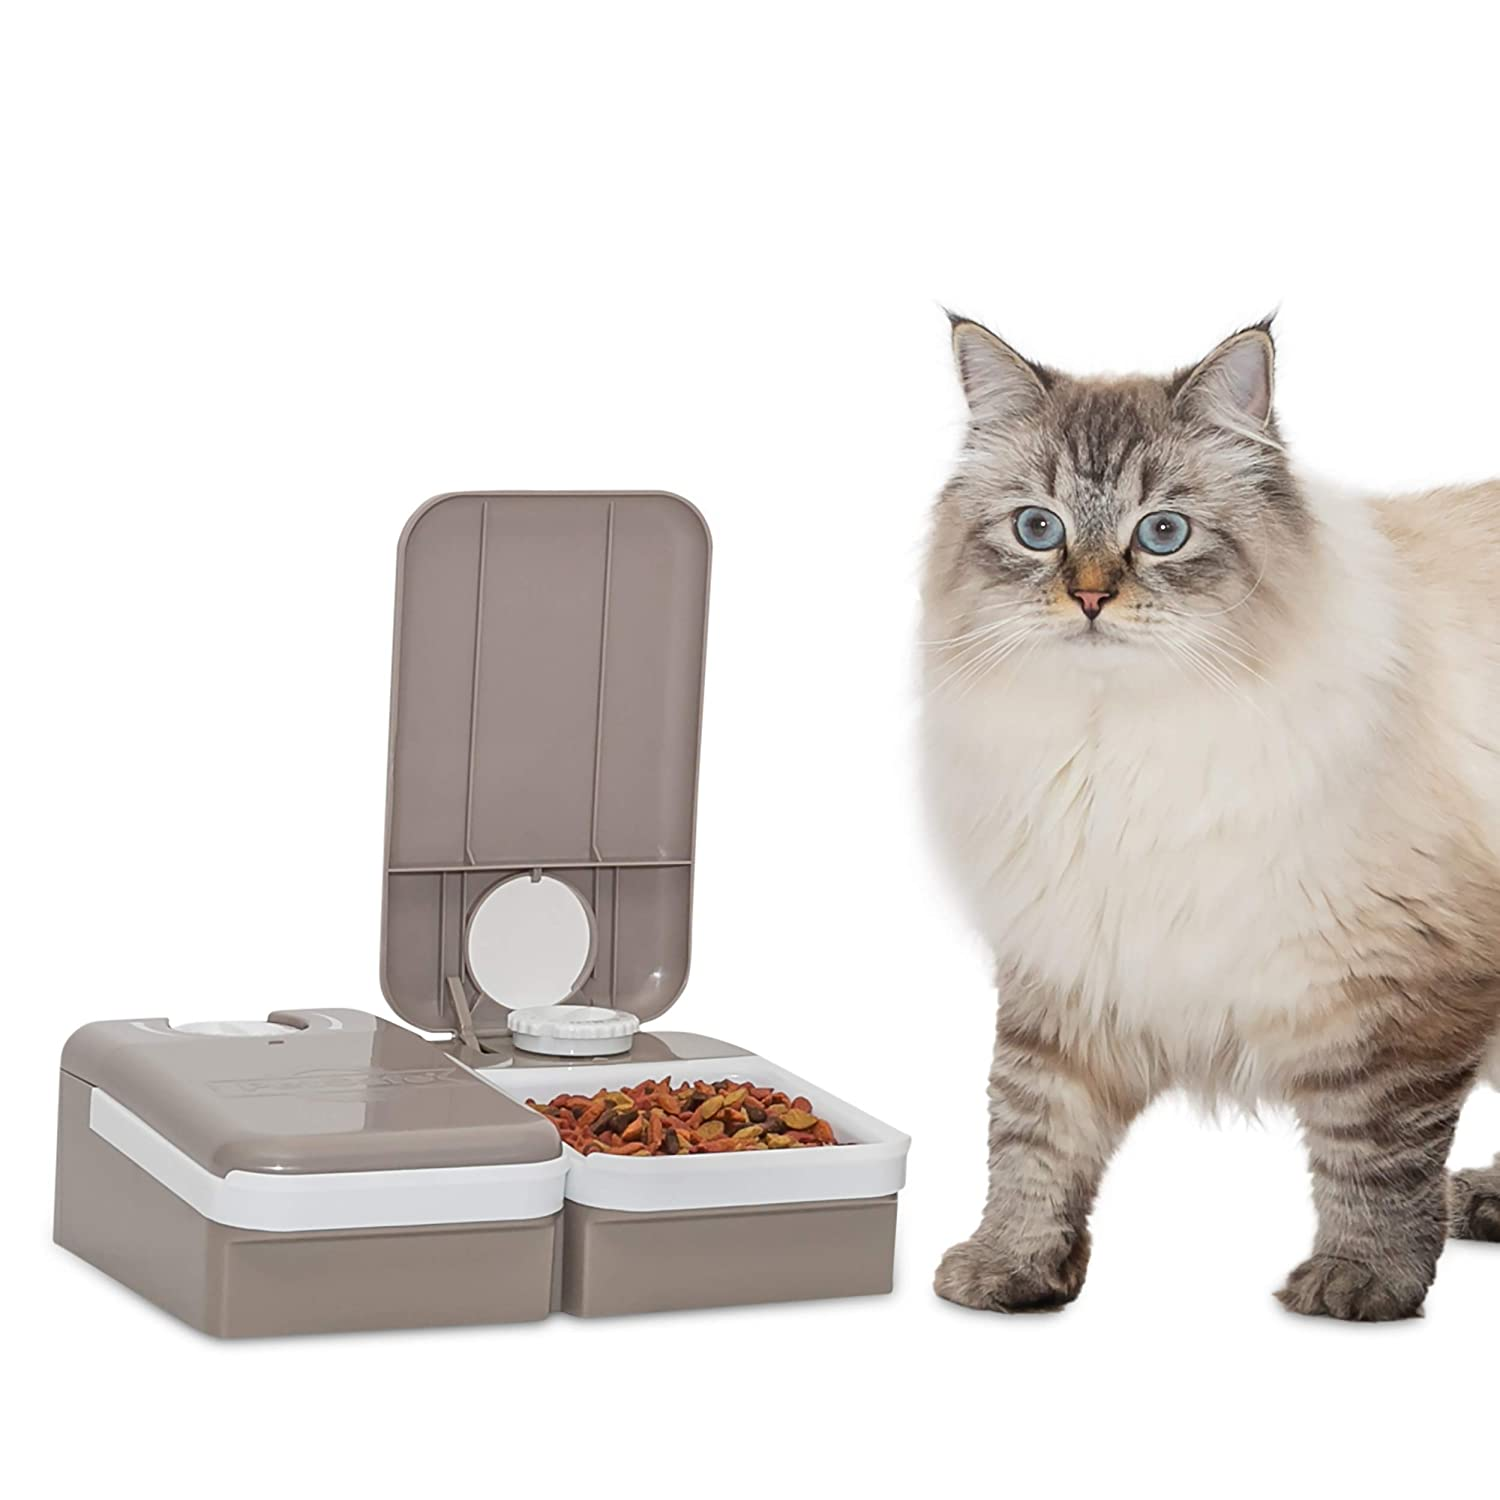 Pet Supplies : PetSafe 2-Meal Automatic Dog and Cat Feeder, Dispenses Dog  Food or Cat Food : Pet Self Feeders : Amazon.com